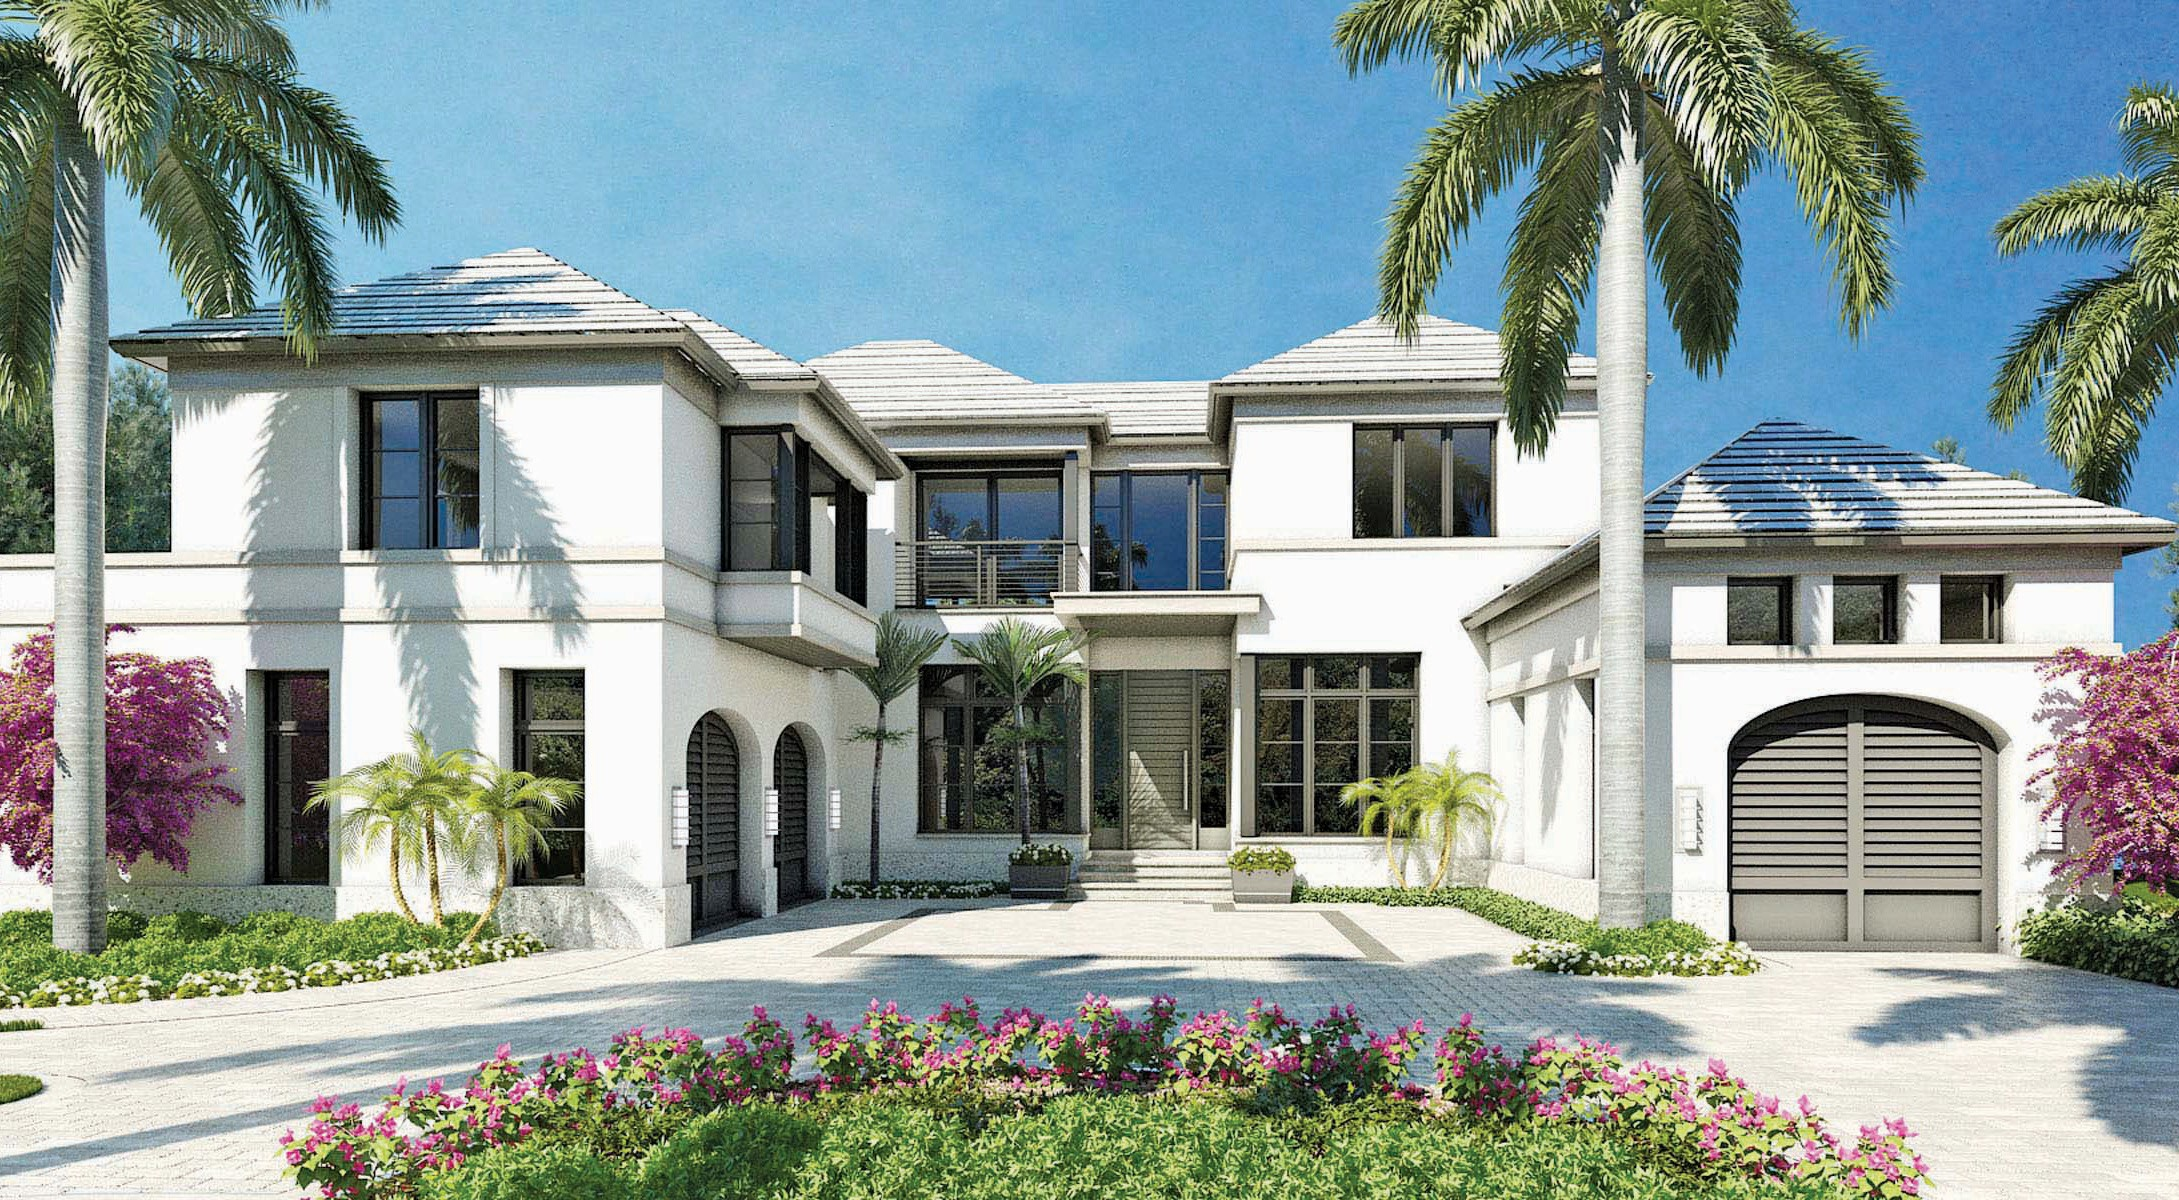 London Bay Homesu0027 New Custom Estate In Port Royal Will Offer 6,394 Square  Feet Of